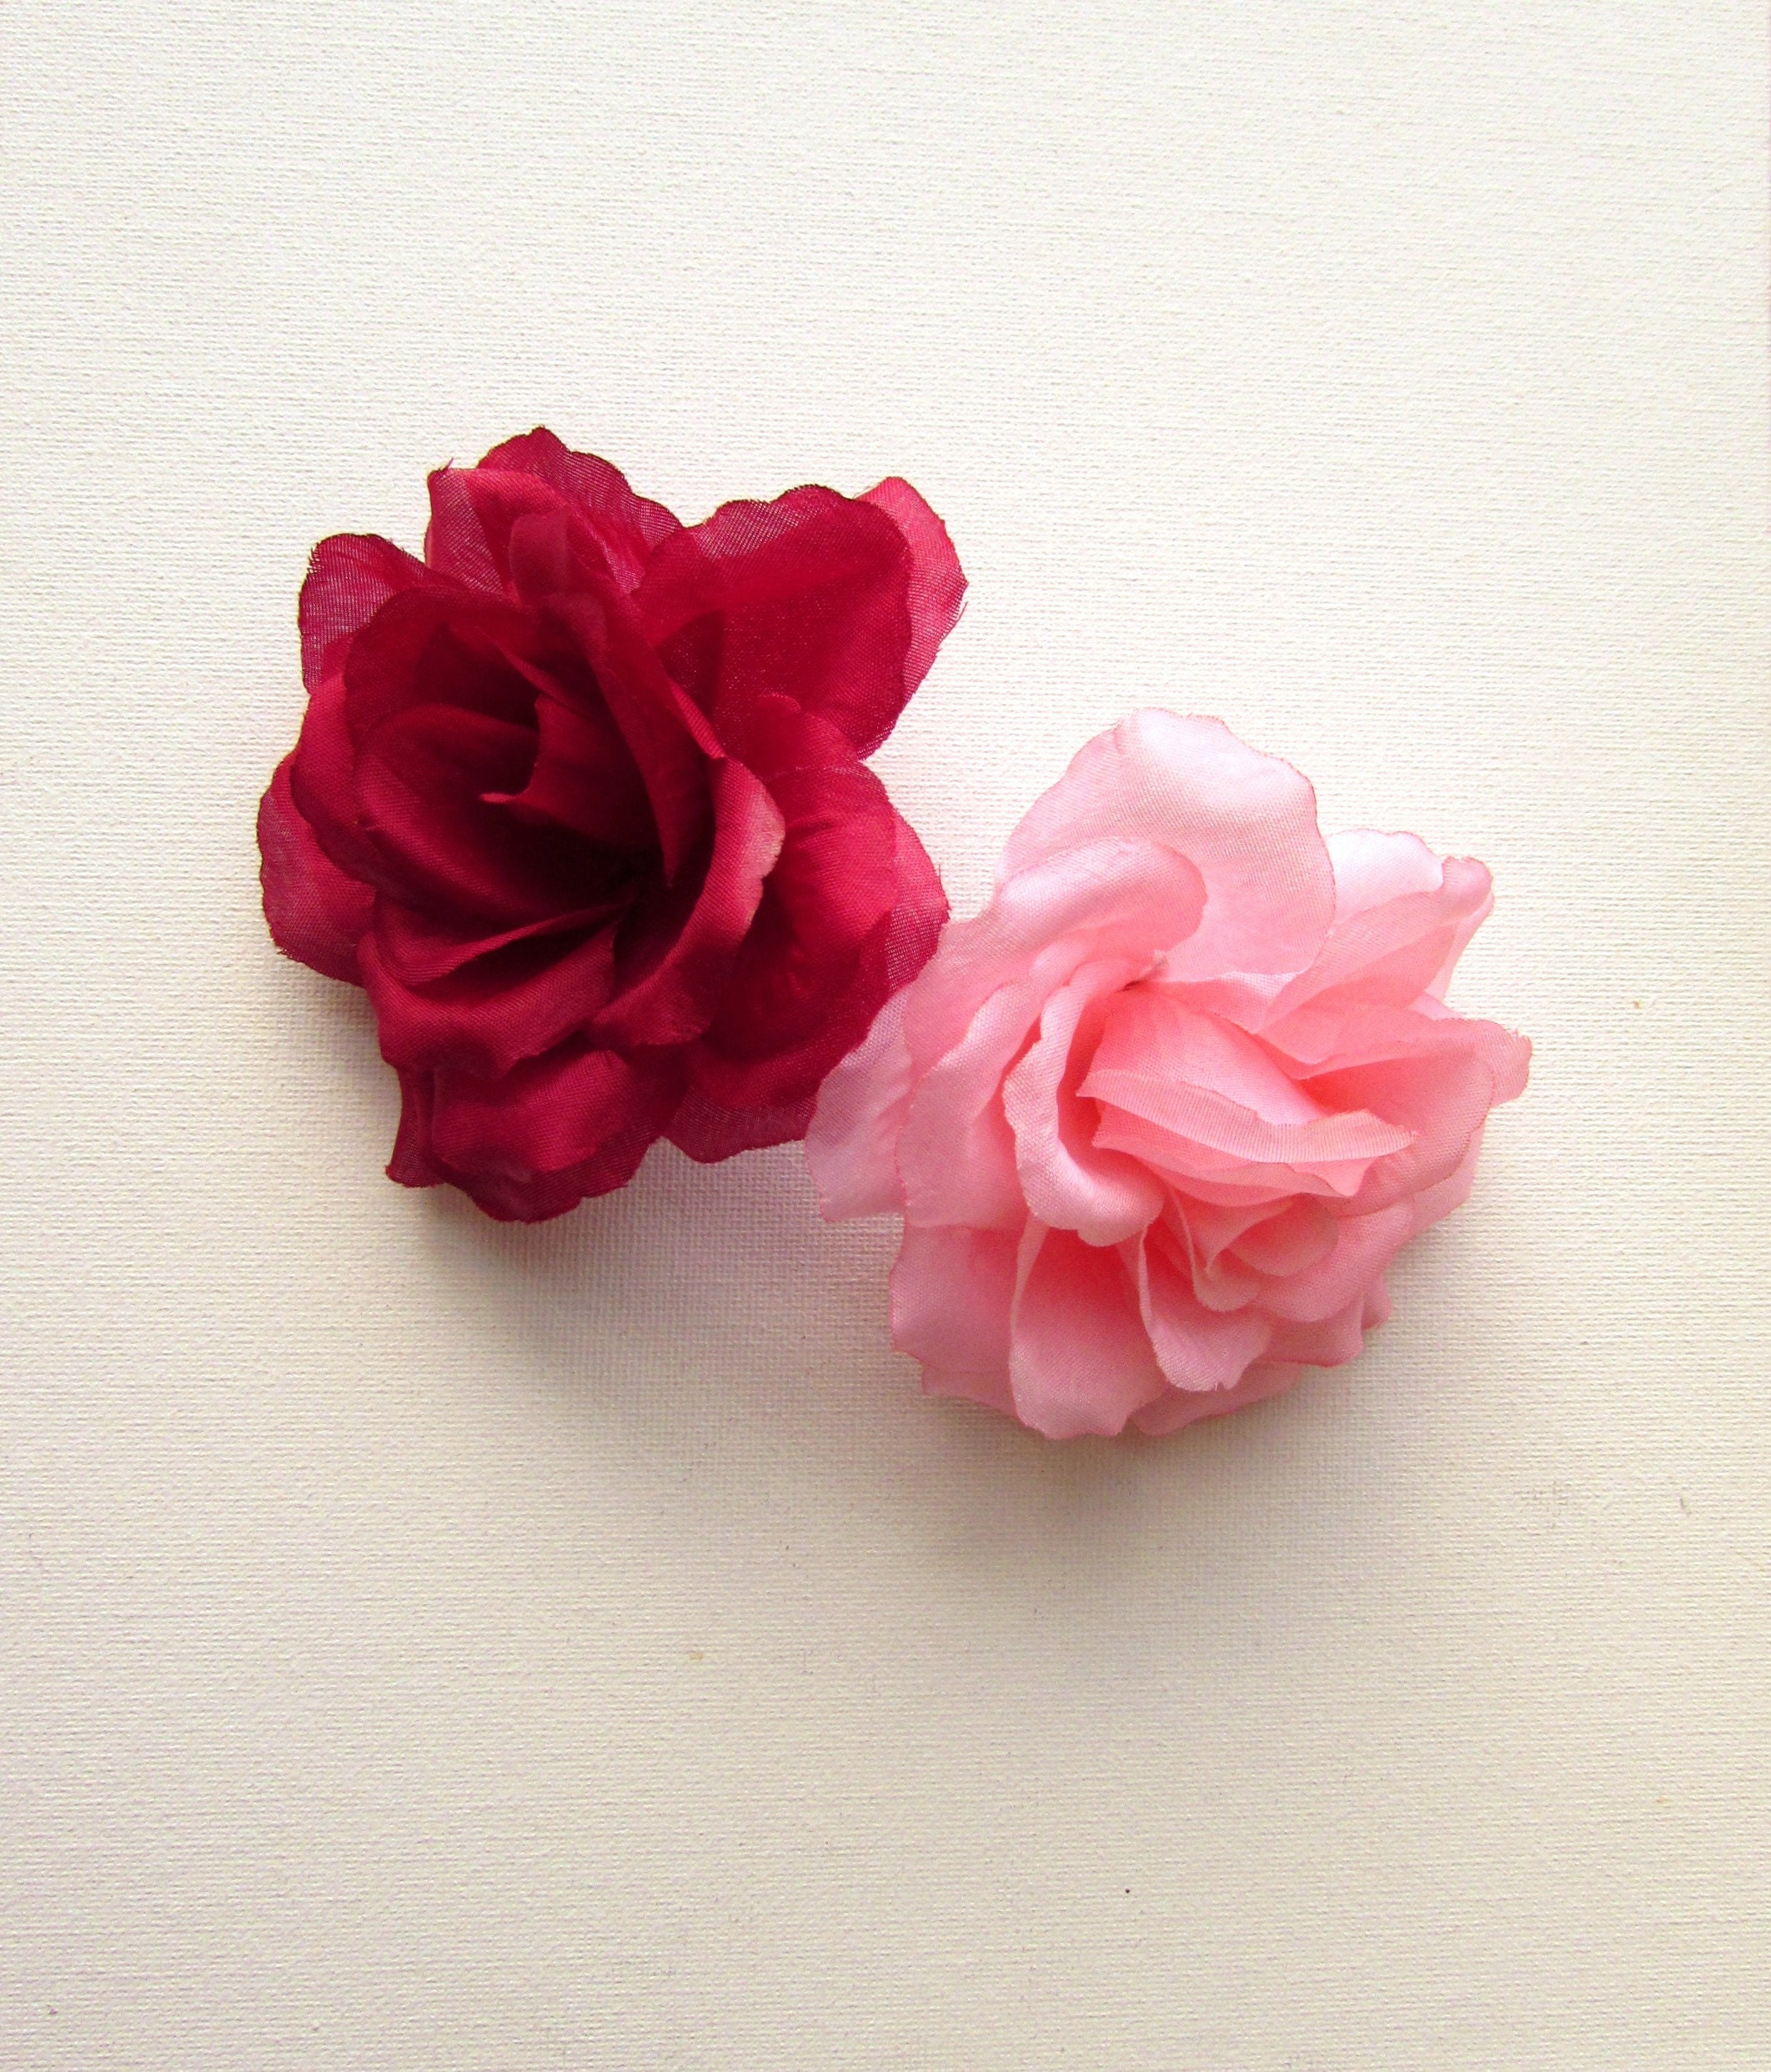 5 Artificial Roses Artificial Fabric Flowers Large Millinery Flowers